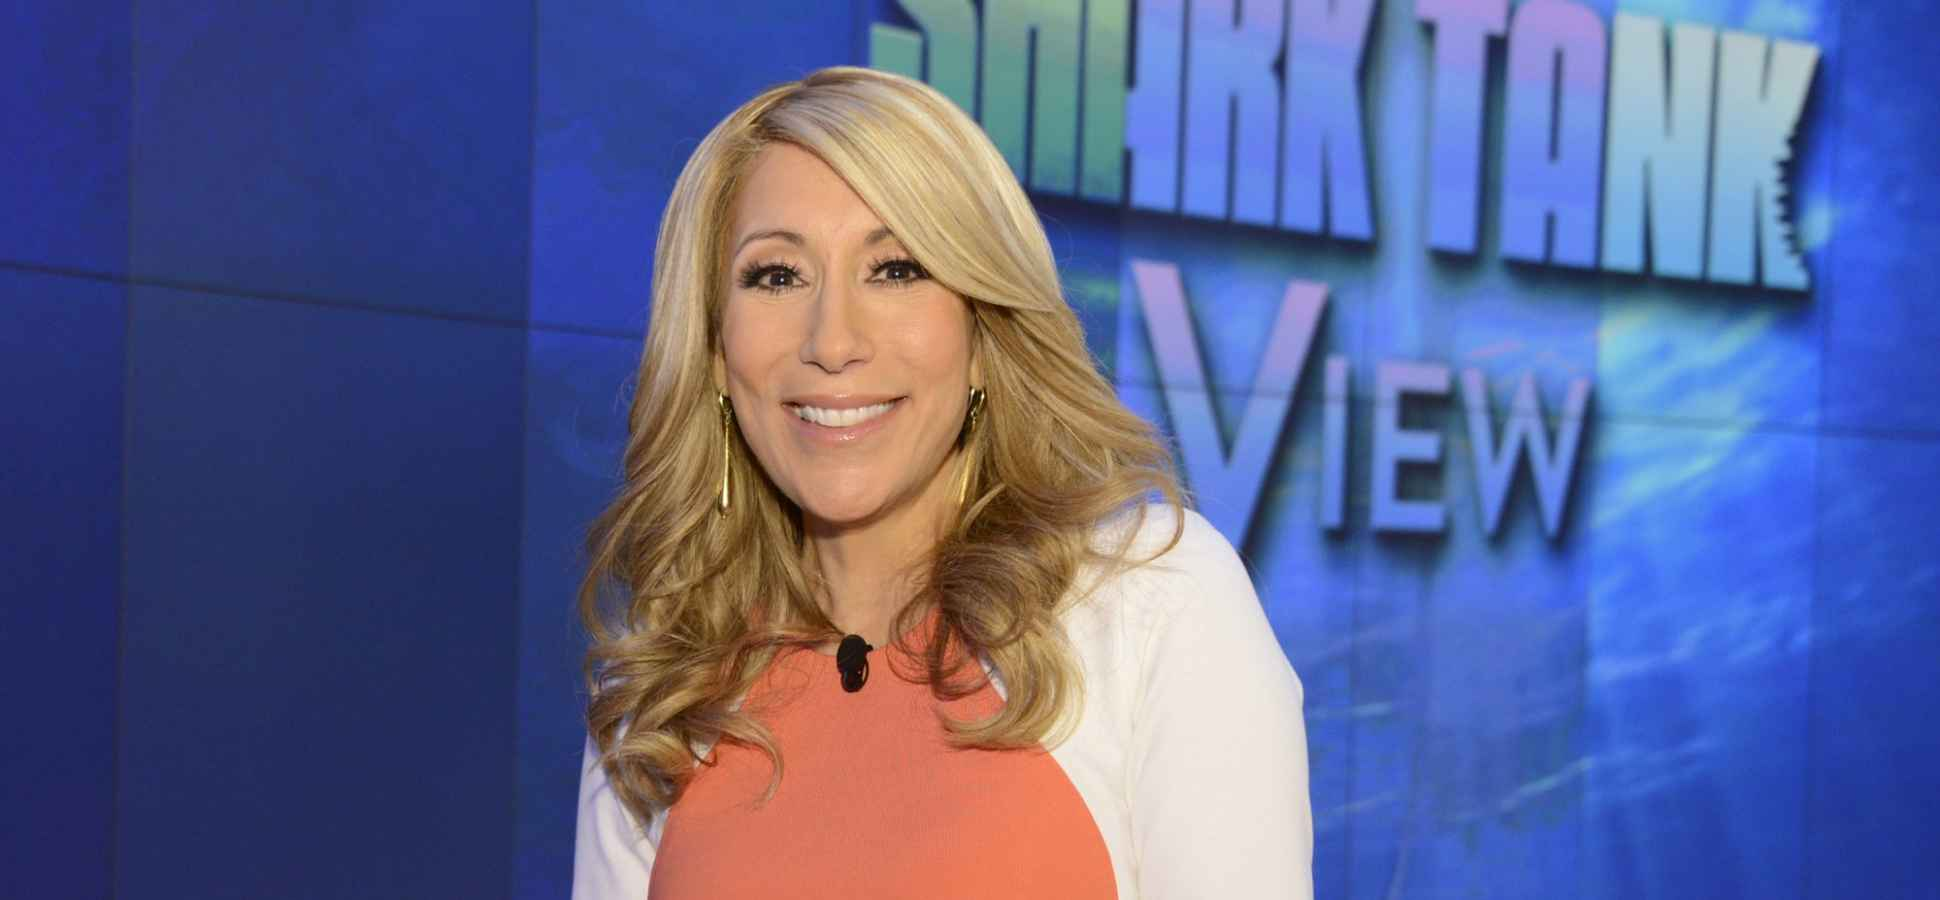 'Shark Tank' Star Lori Greiner's 5 Major Rules for Becoming a Successful Inventor